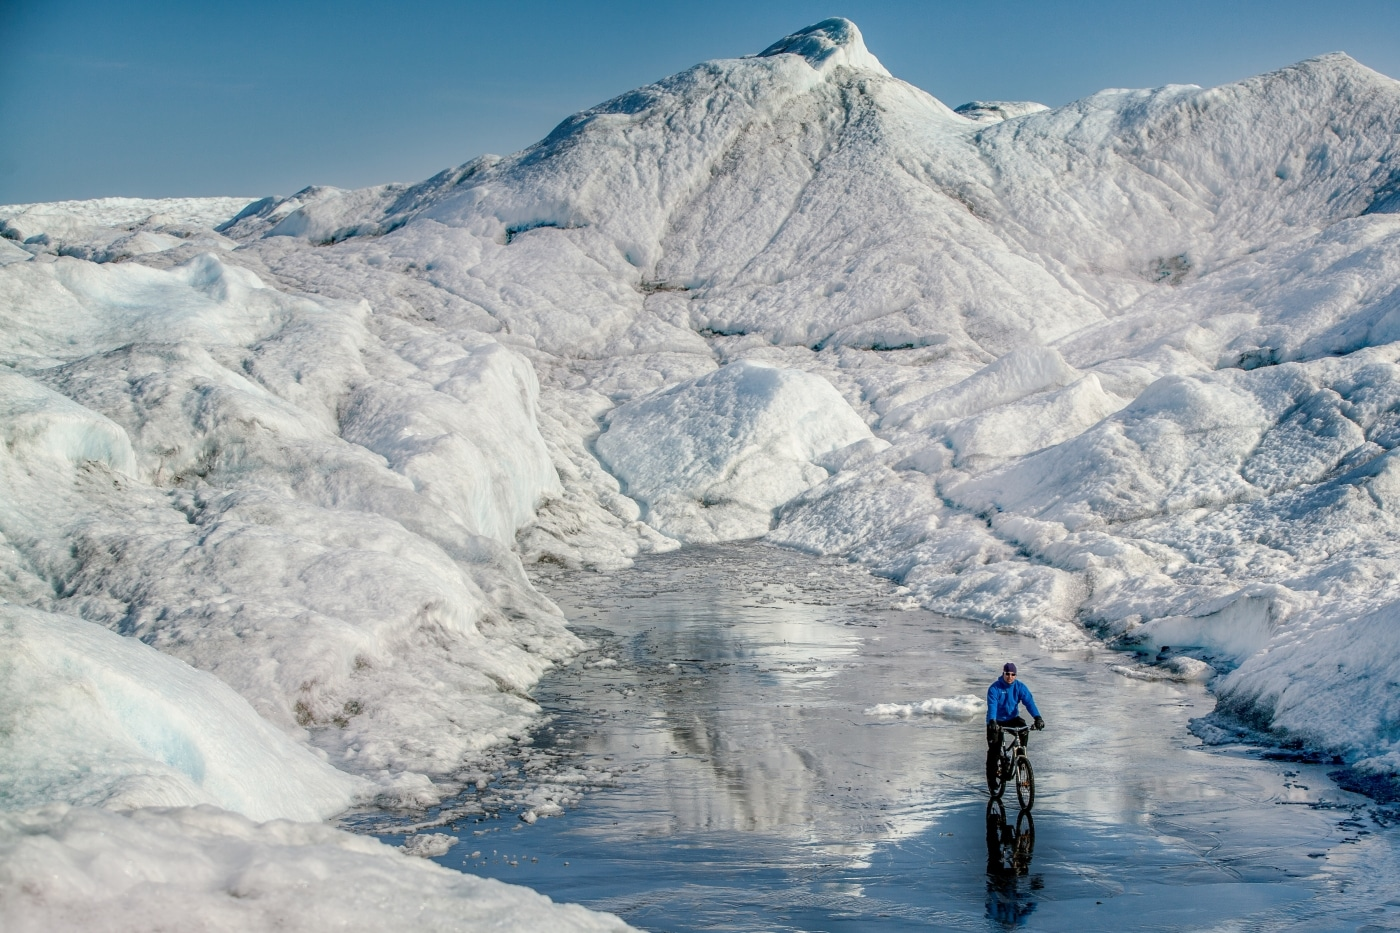 A mountain biker on the Greenland Ice Sheet near Kangerlussuaq. Photo by Mads Pihl - Visit Greenland